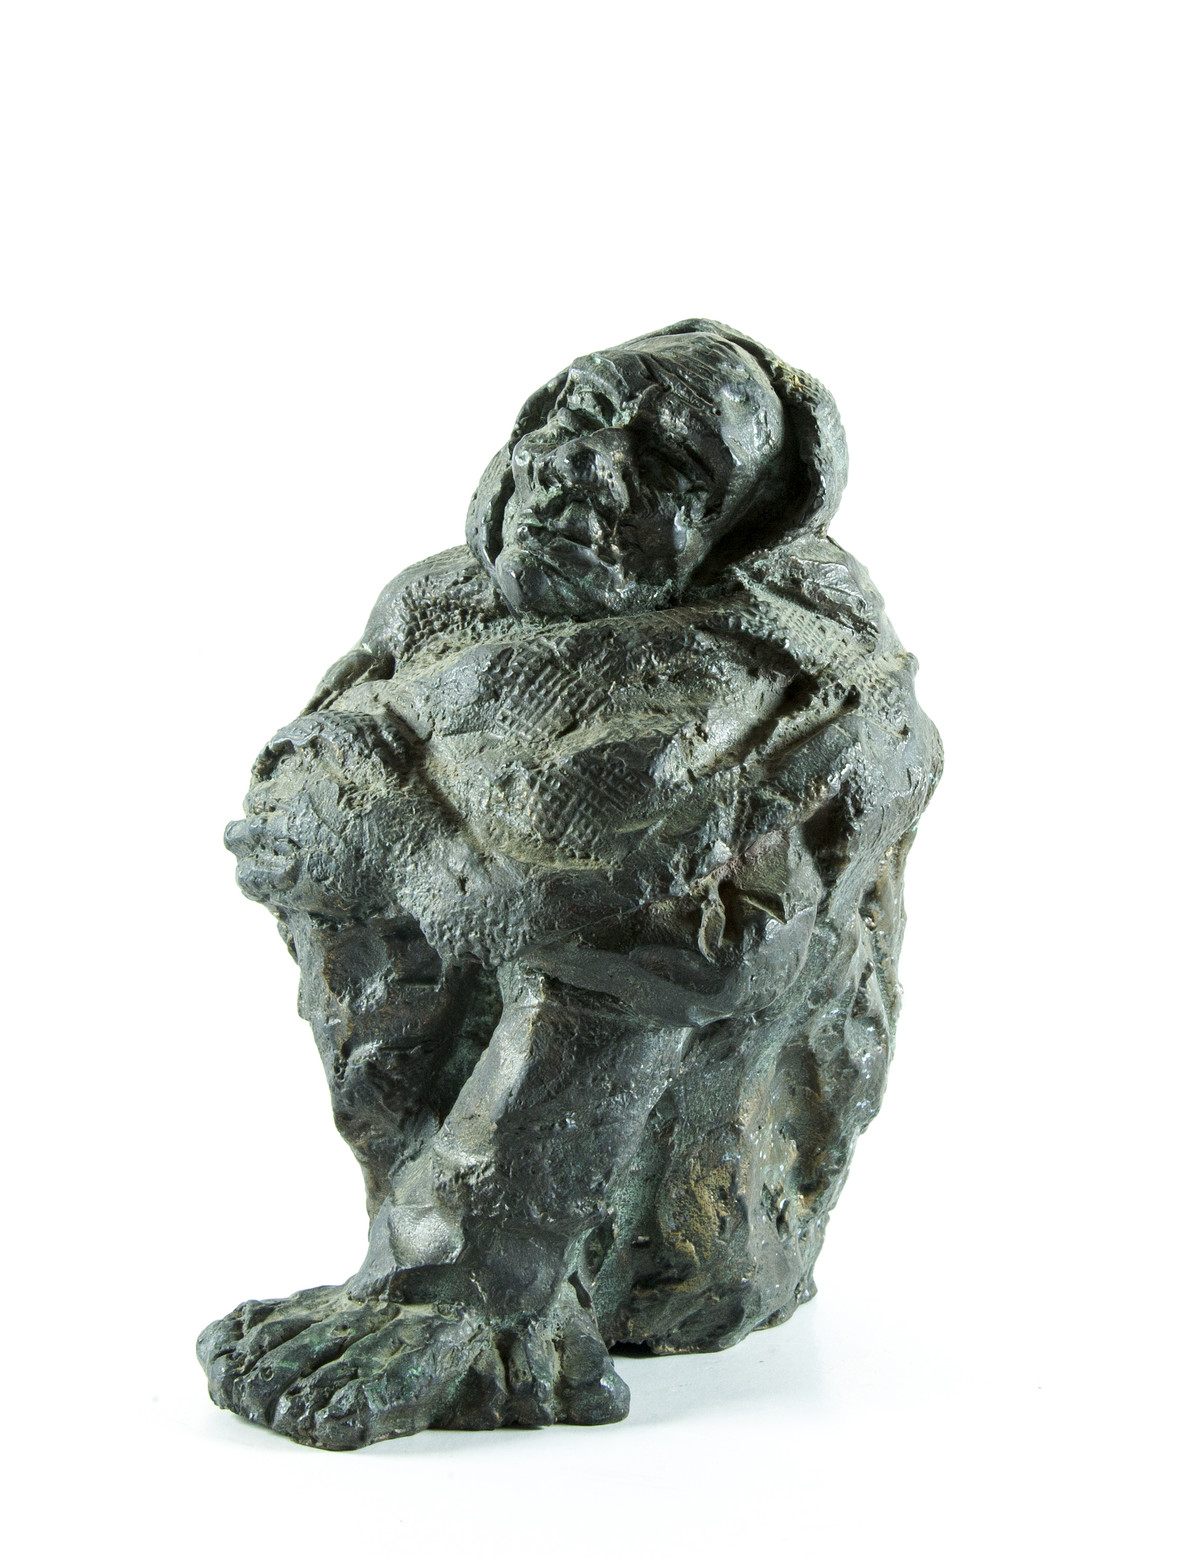 In the cold by Debabrata De, Expressionism Sculpture | 3D, Ceramic, White color